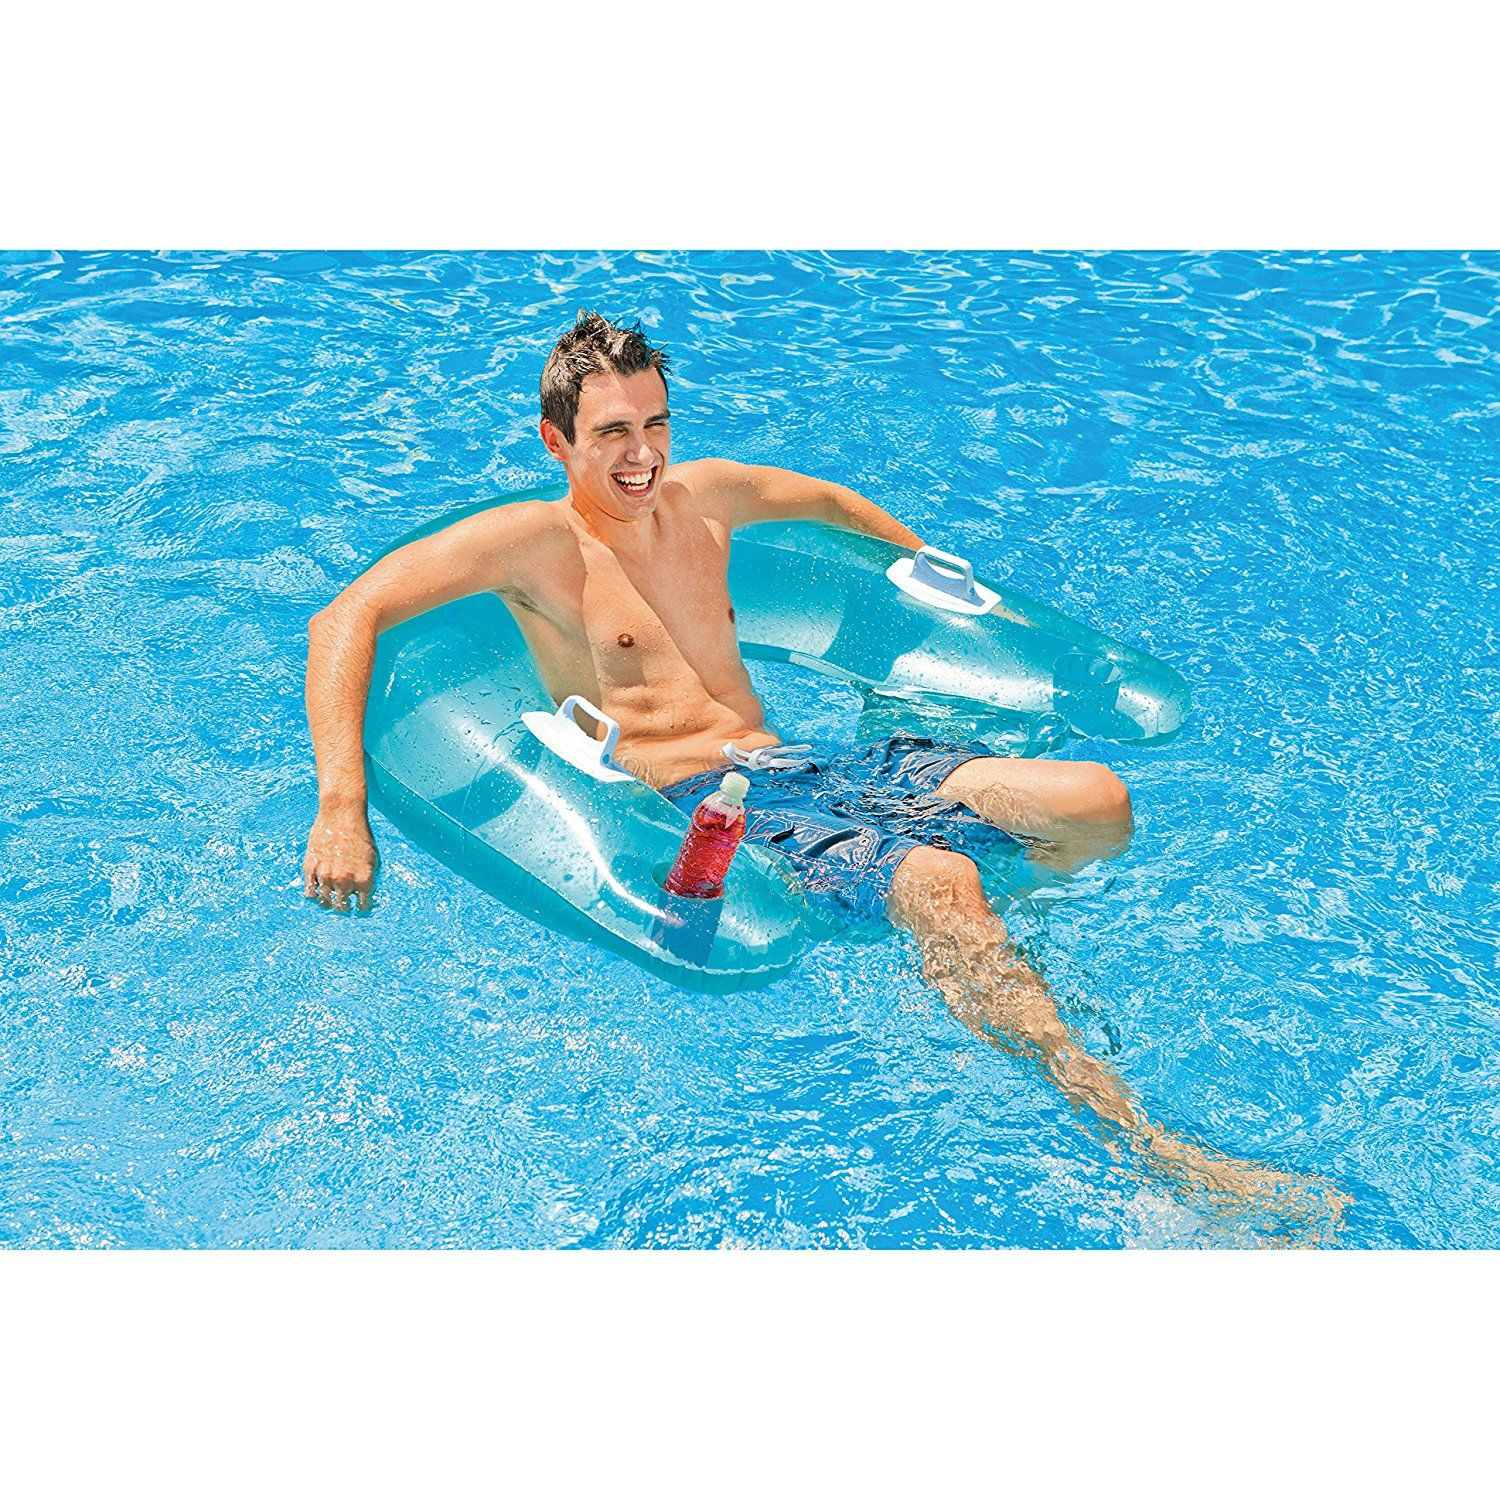 Inflatable Swimming Pool Float Floating Chair Lounger Tube Air Mattress  Lake New For Like The Inflatable Swimming Pool Float Floating Chair Lounger  Tube Air ...